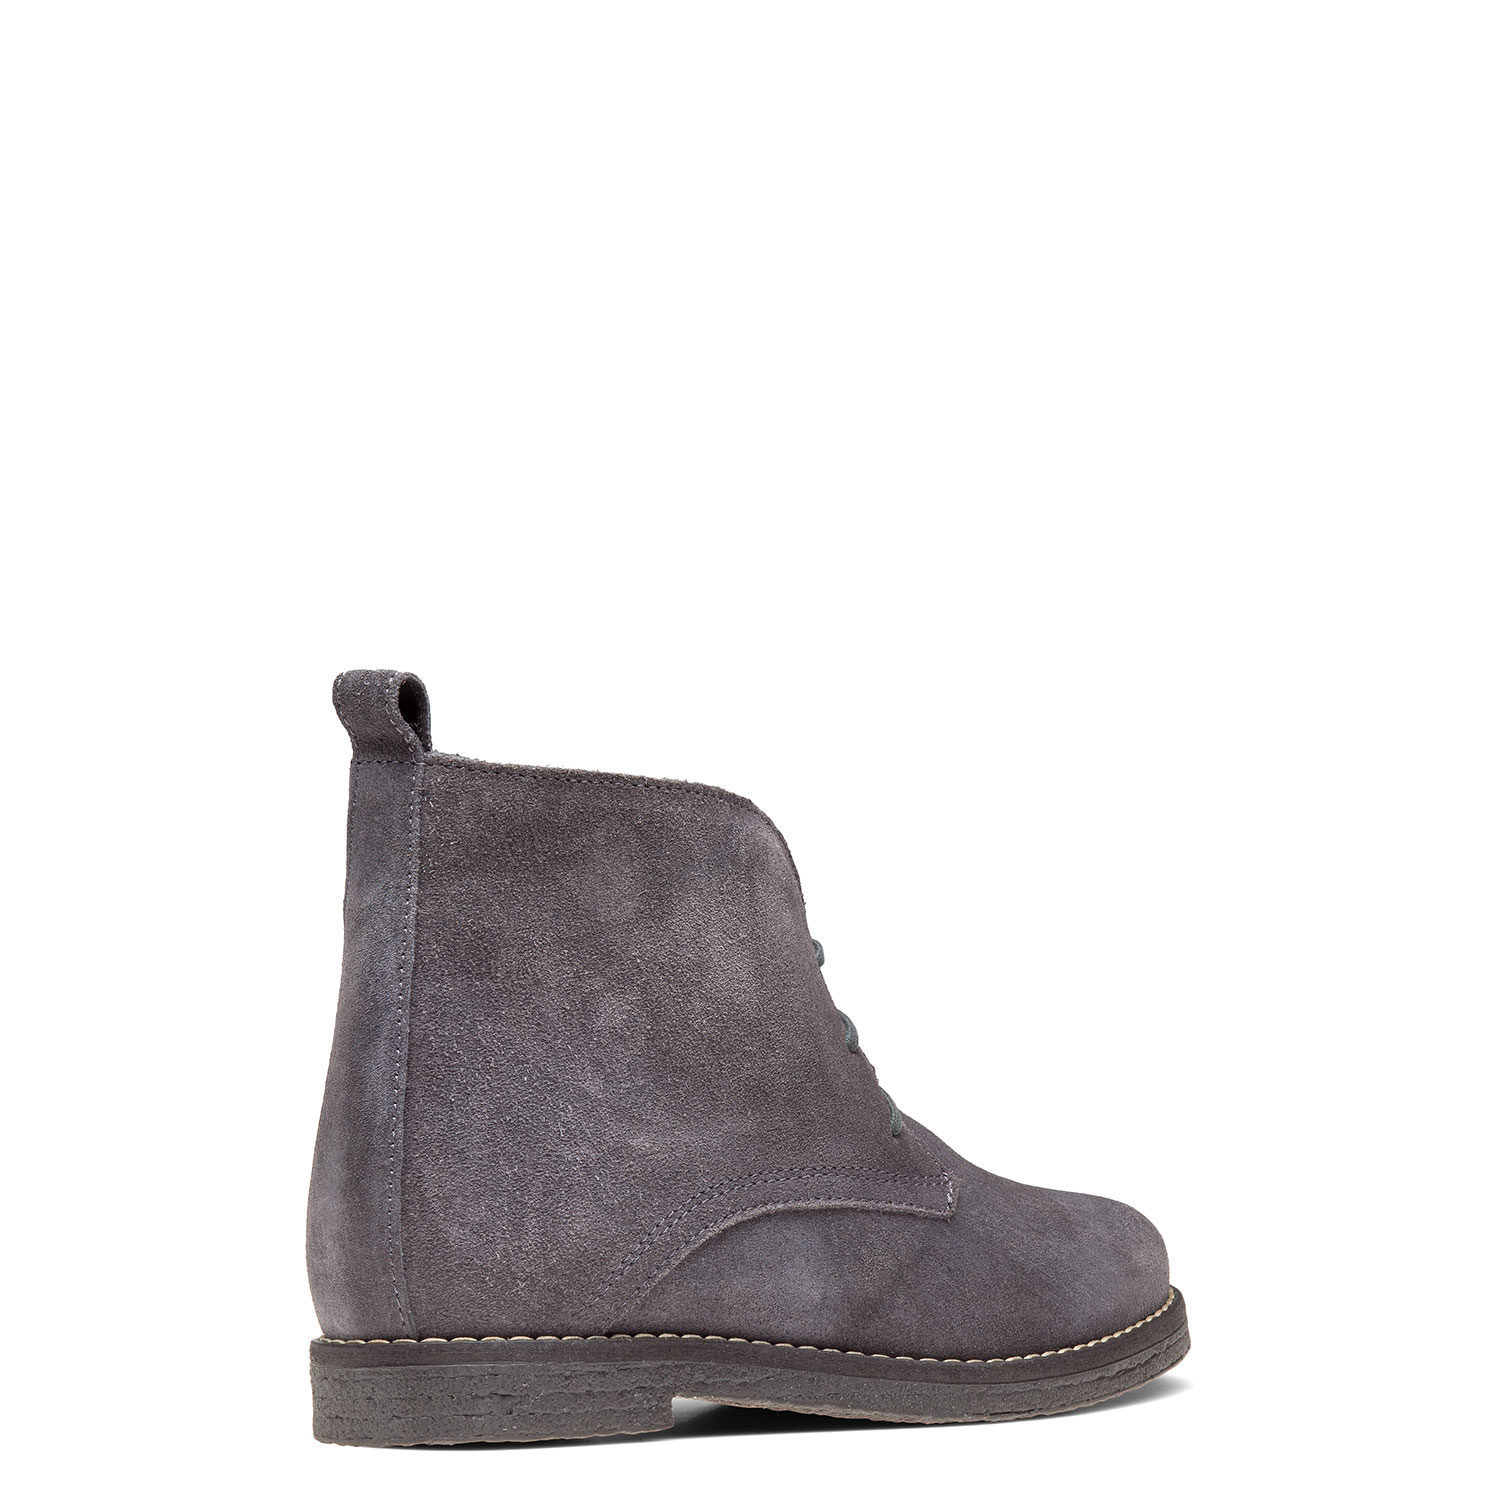 Women's cold weather ankle boots CARLO PAZOLINI SW-SNW3-10